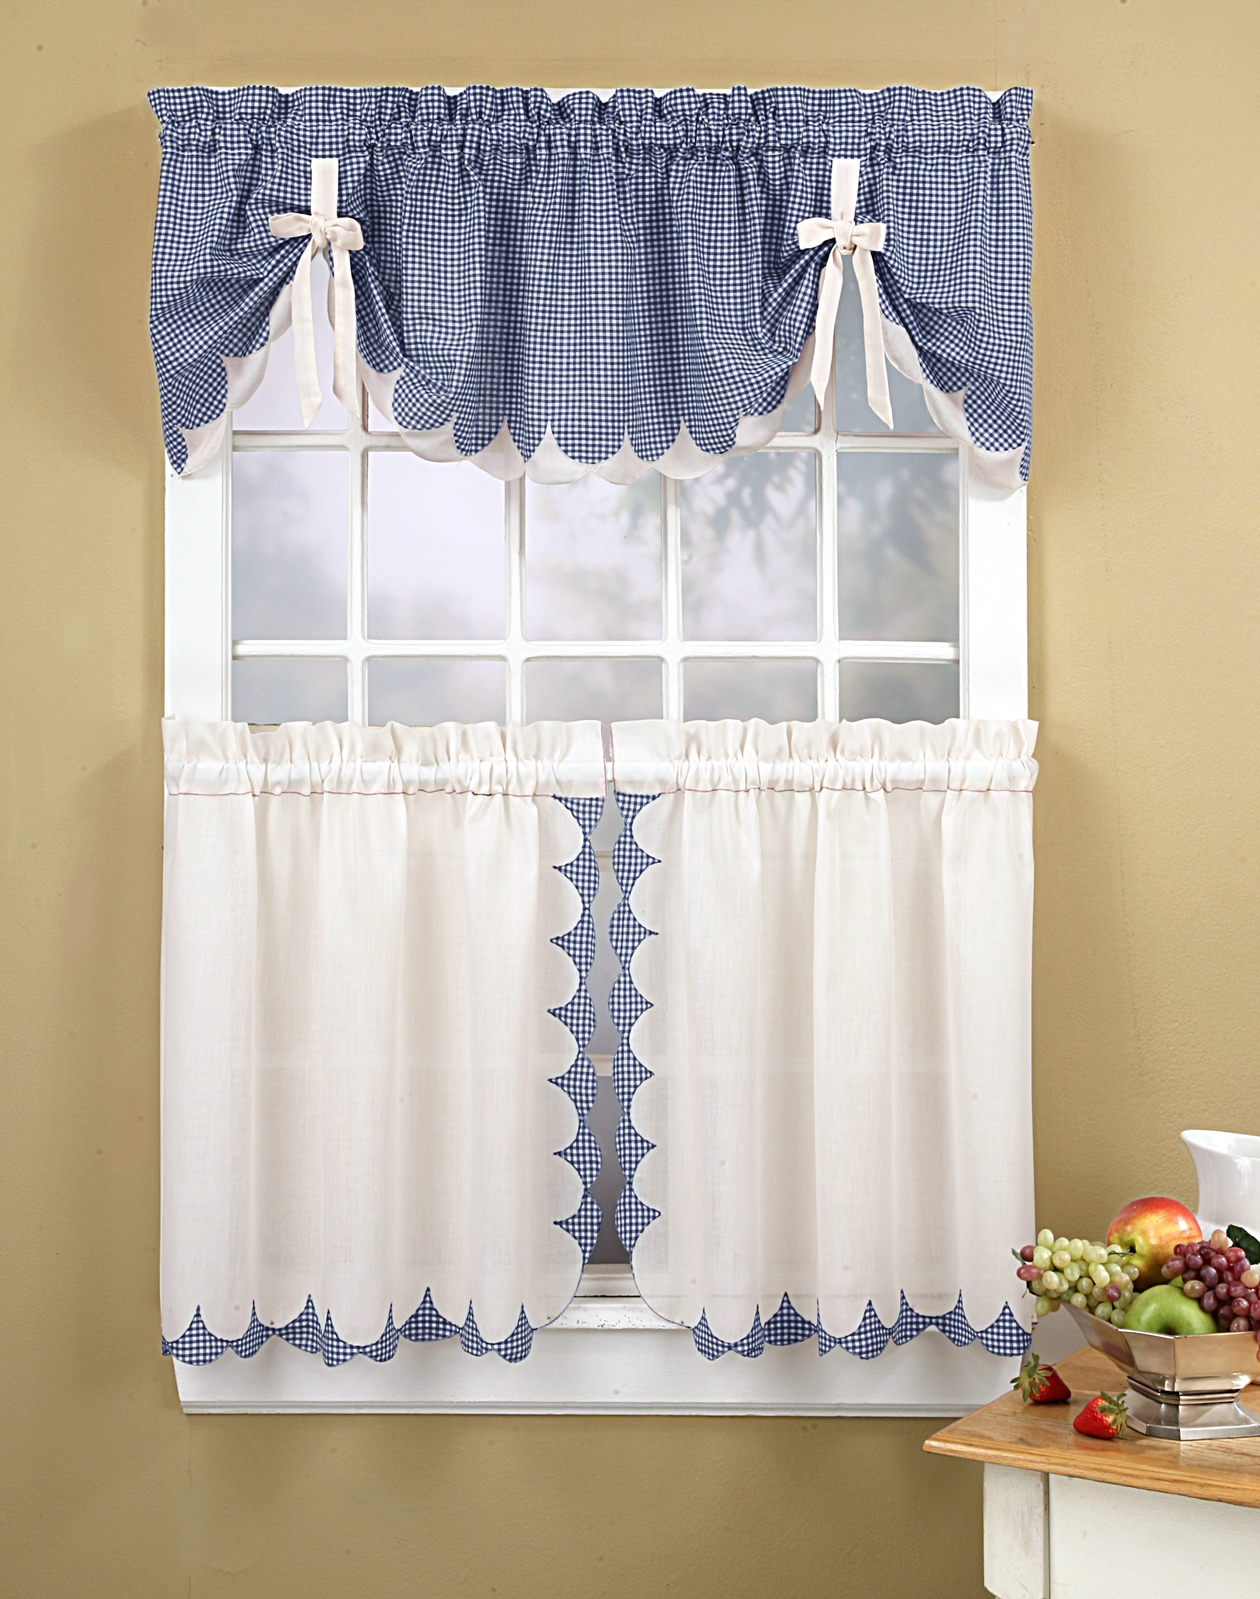 Kitchen Curtains Tabitha 3 Piece Kitchen Curtain Tier Set Inside Hand Made Curtains (Image 10 of 15)